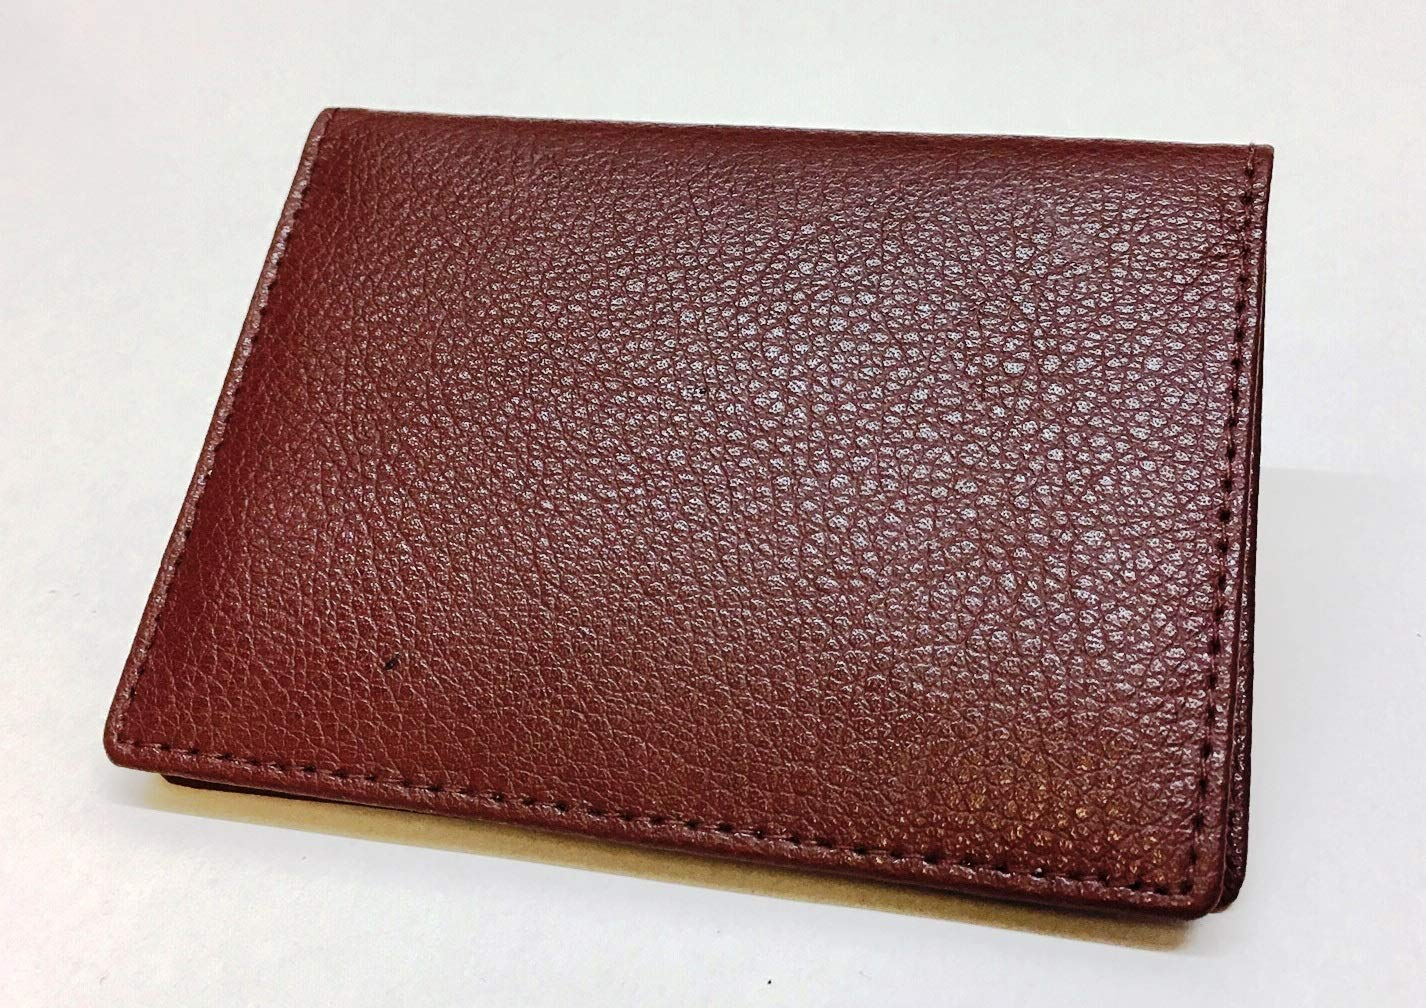 Real Leather Oyster Card Holder Wallet Burgundy Chelsea Leather